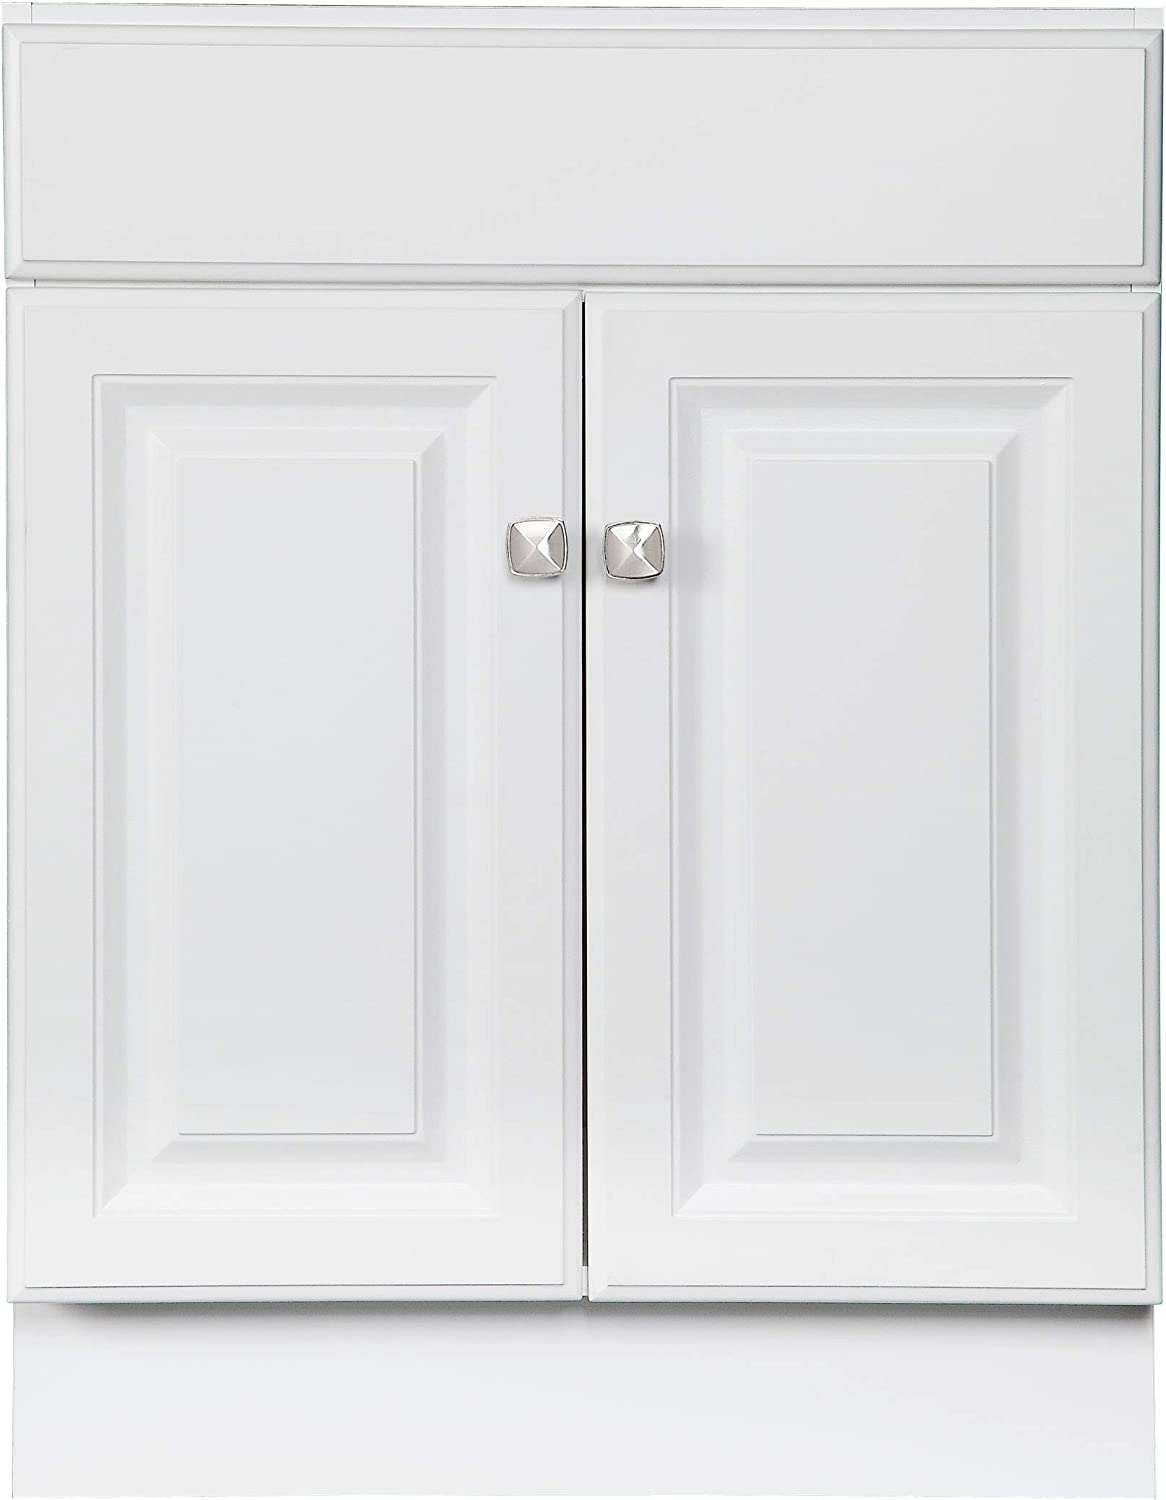 Design House 597120 Wyndham Unassembled Bathroom Vanity Cabinet without Top 8-Inch Widespread White